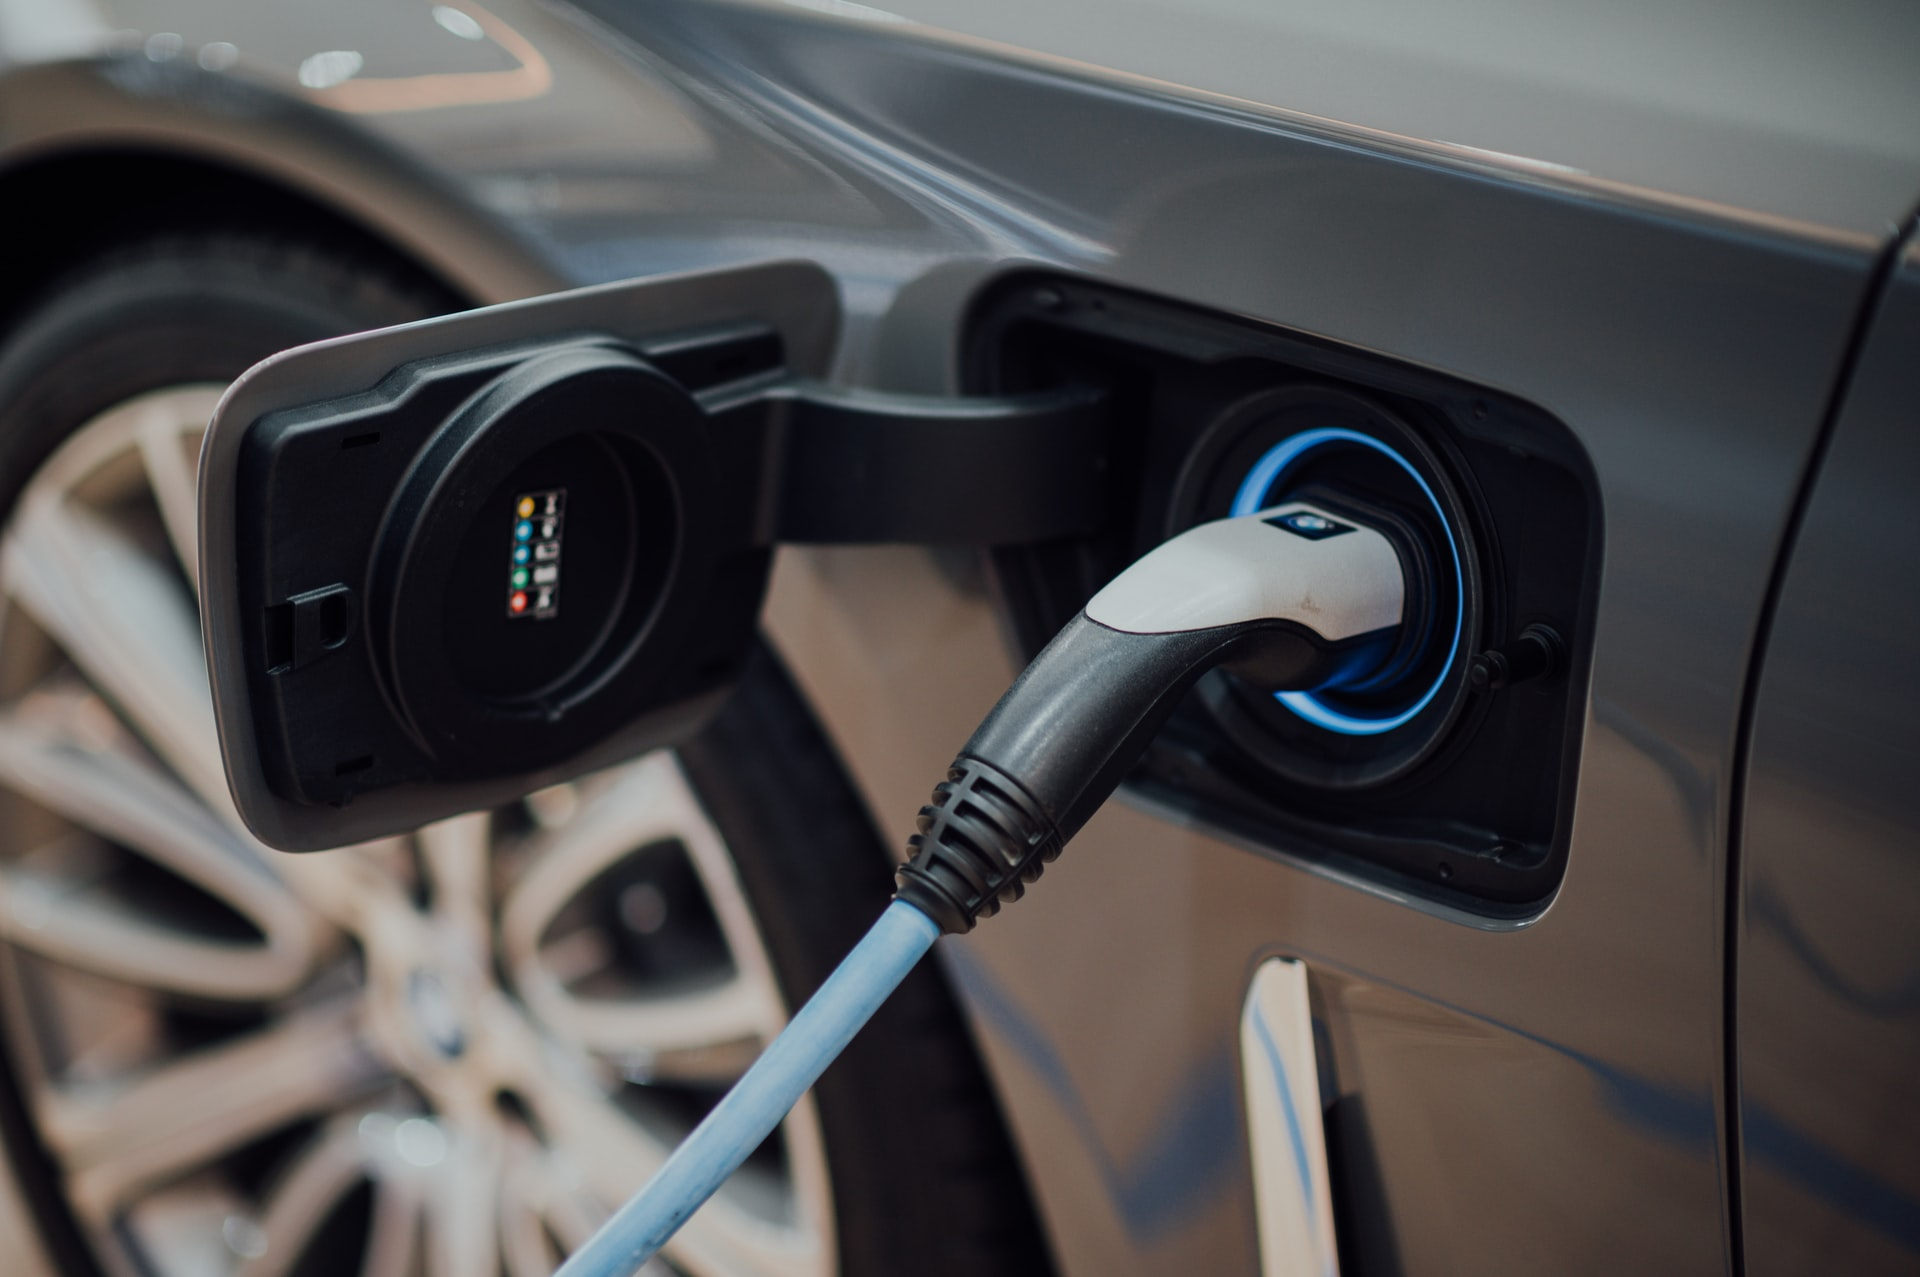 Long-Term Rise in Electric Vehicle Sales Likely to be Driven by a Buildout of Charging Infrastructure